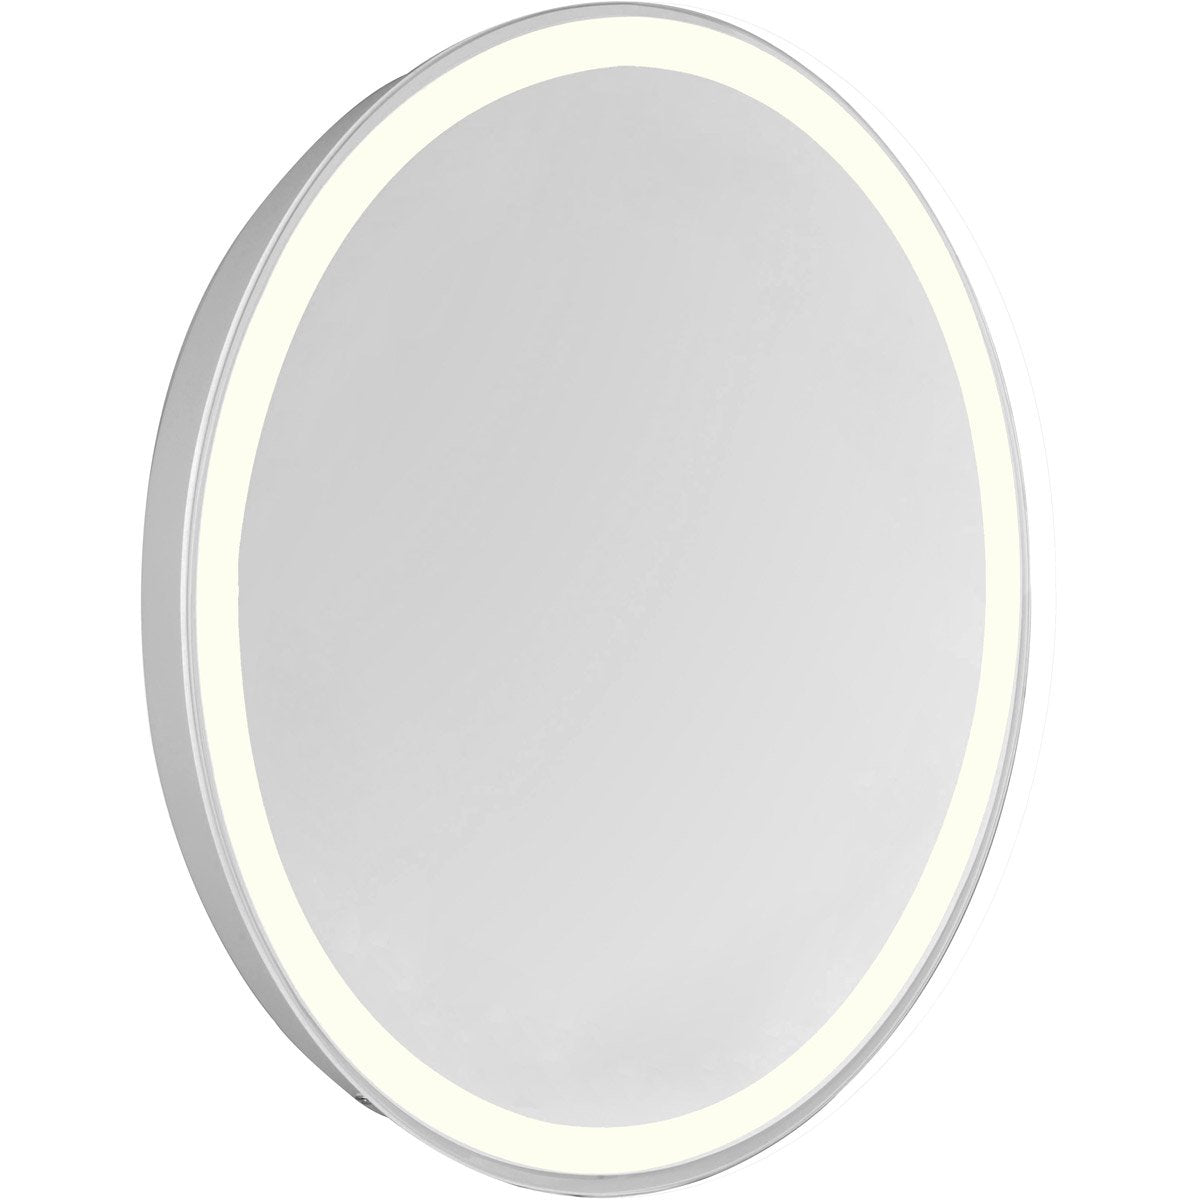 Nova 28 X 21 Hardwired Glossy White Led Wall Mirror (Mre-6116) Led Mirror